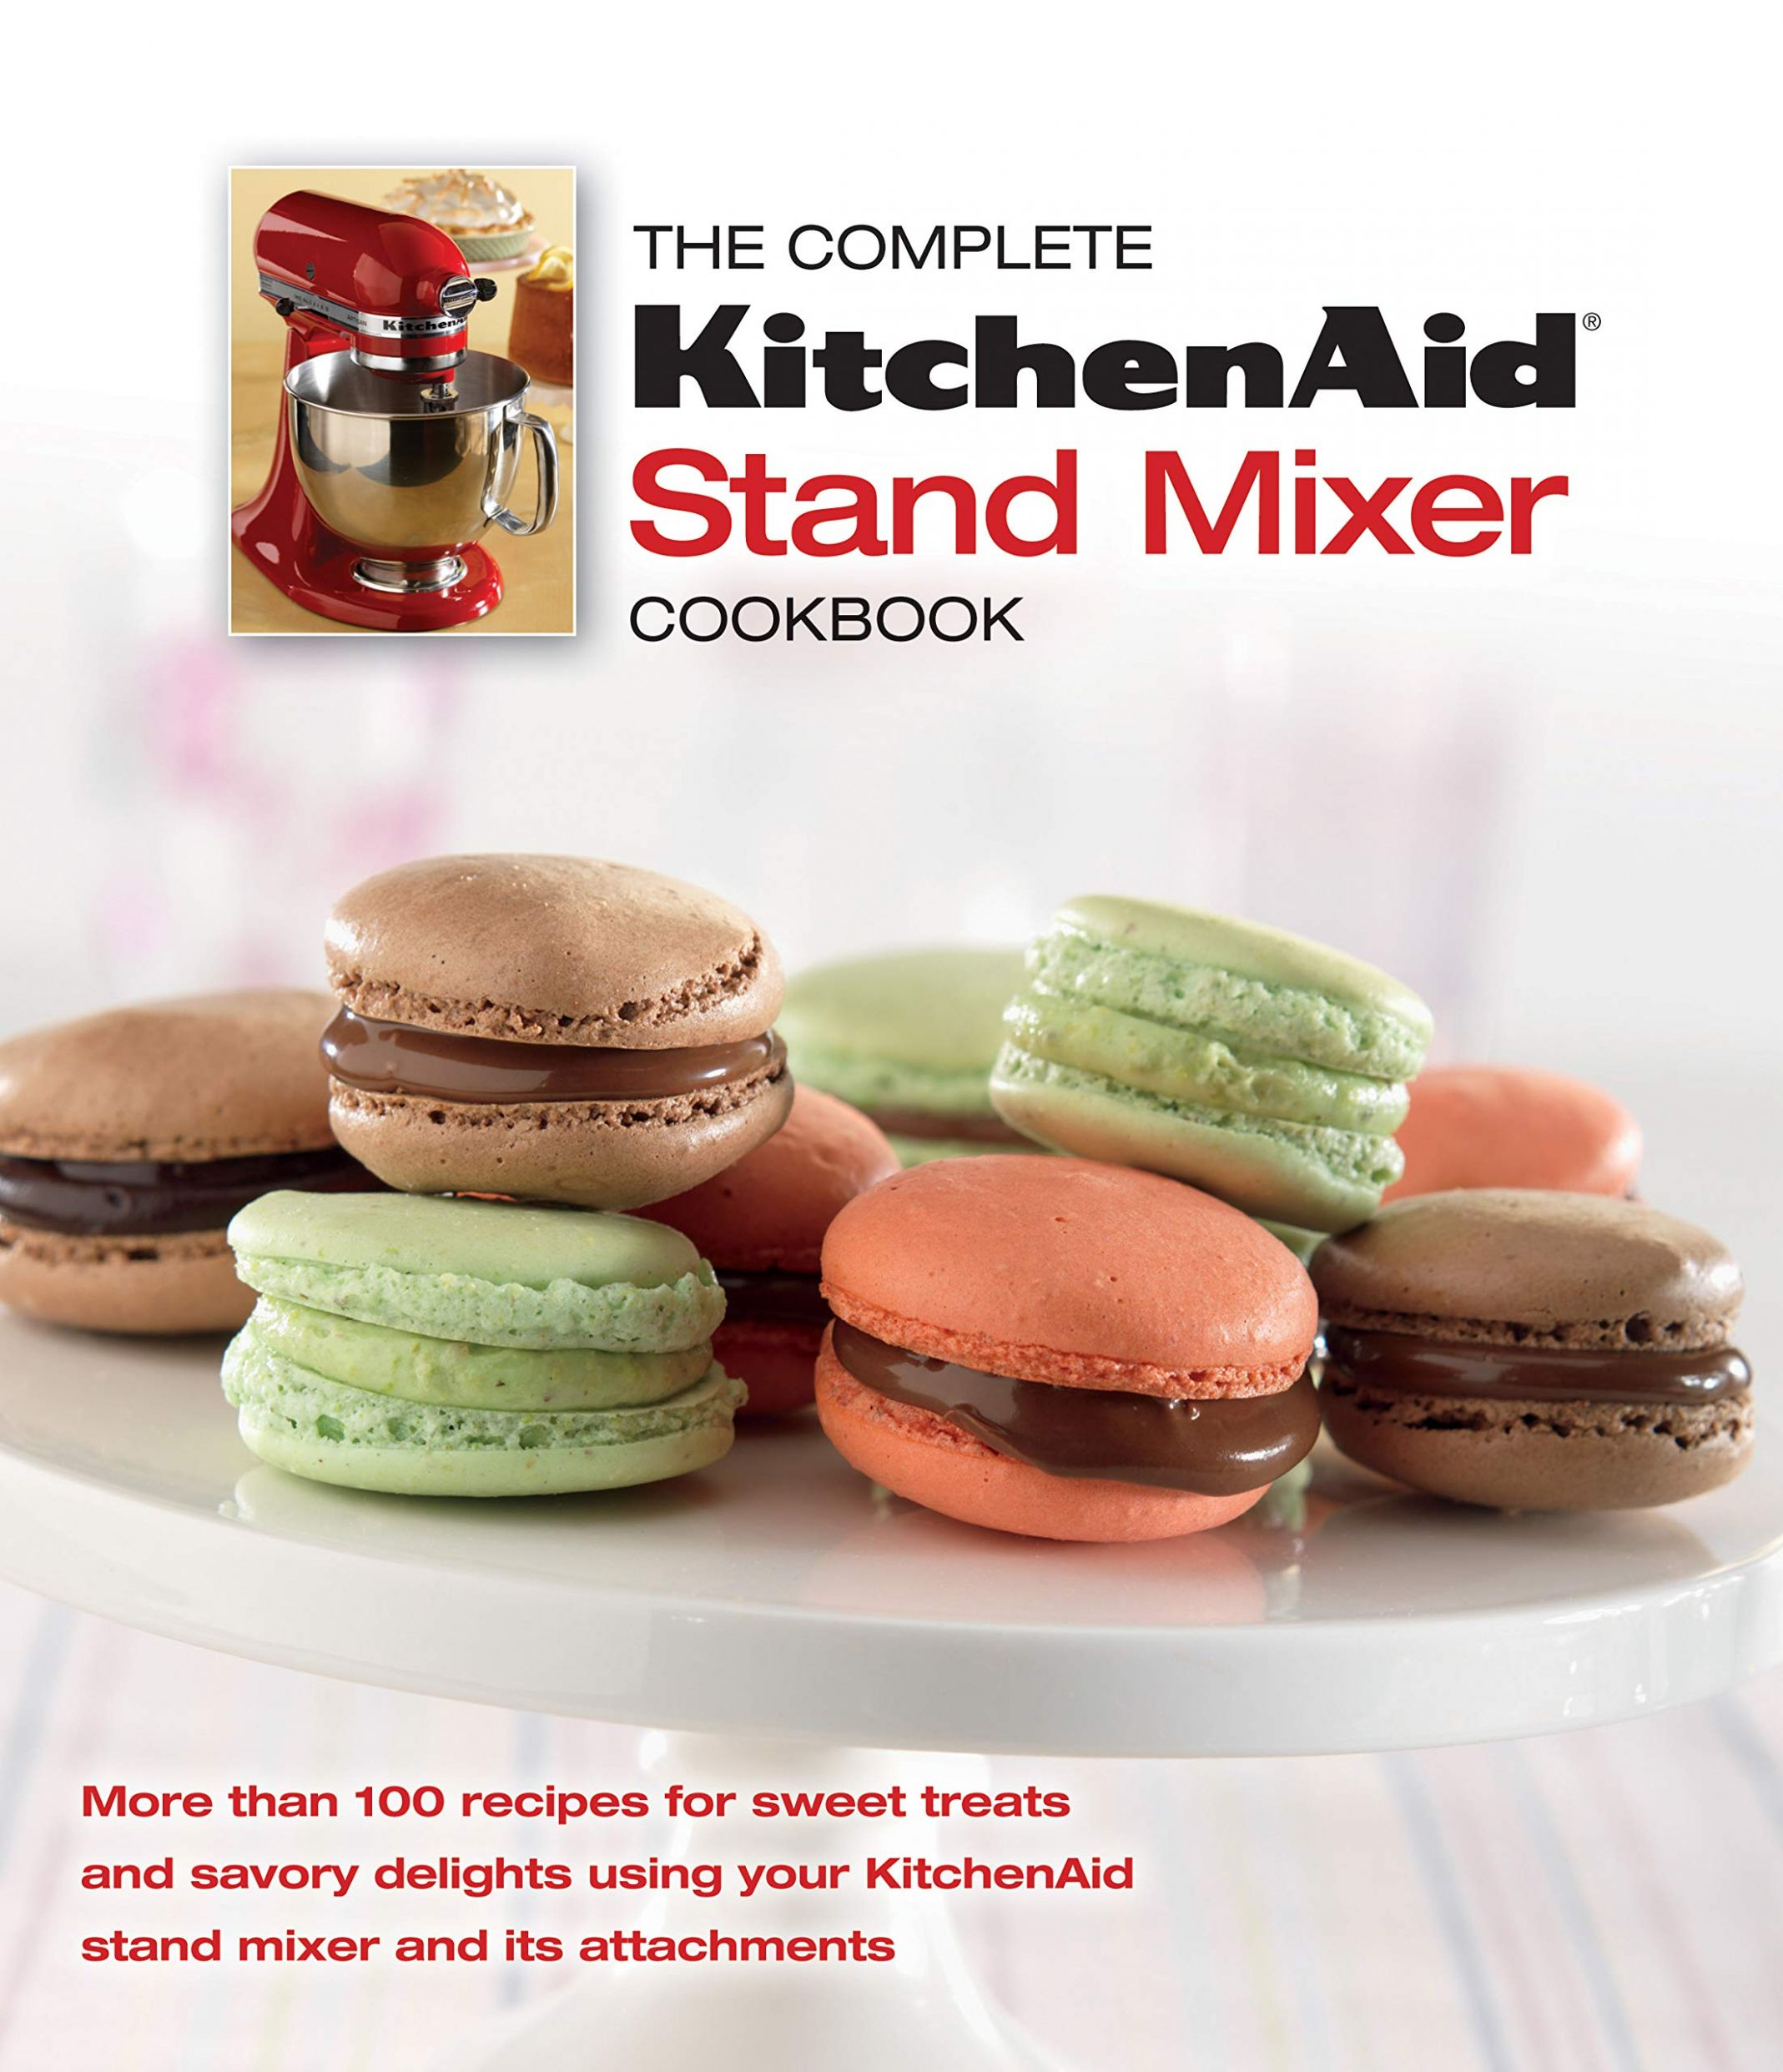 The Complete KitchenAid Stand Mixer Cookbook: Publications ..